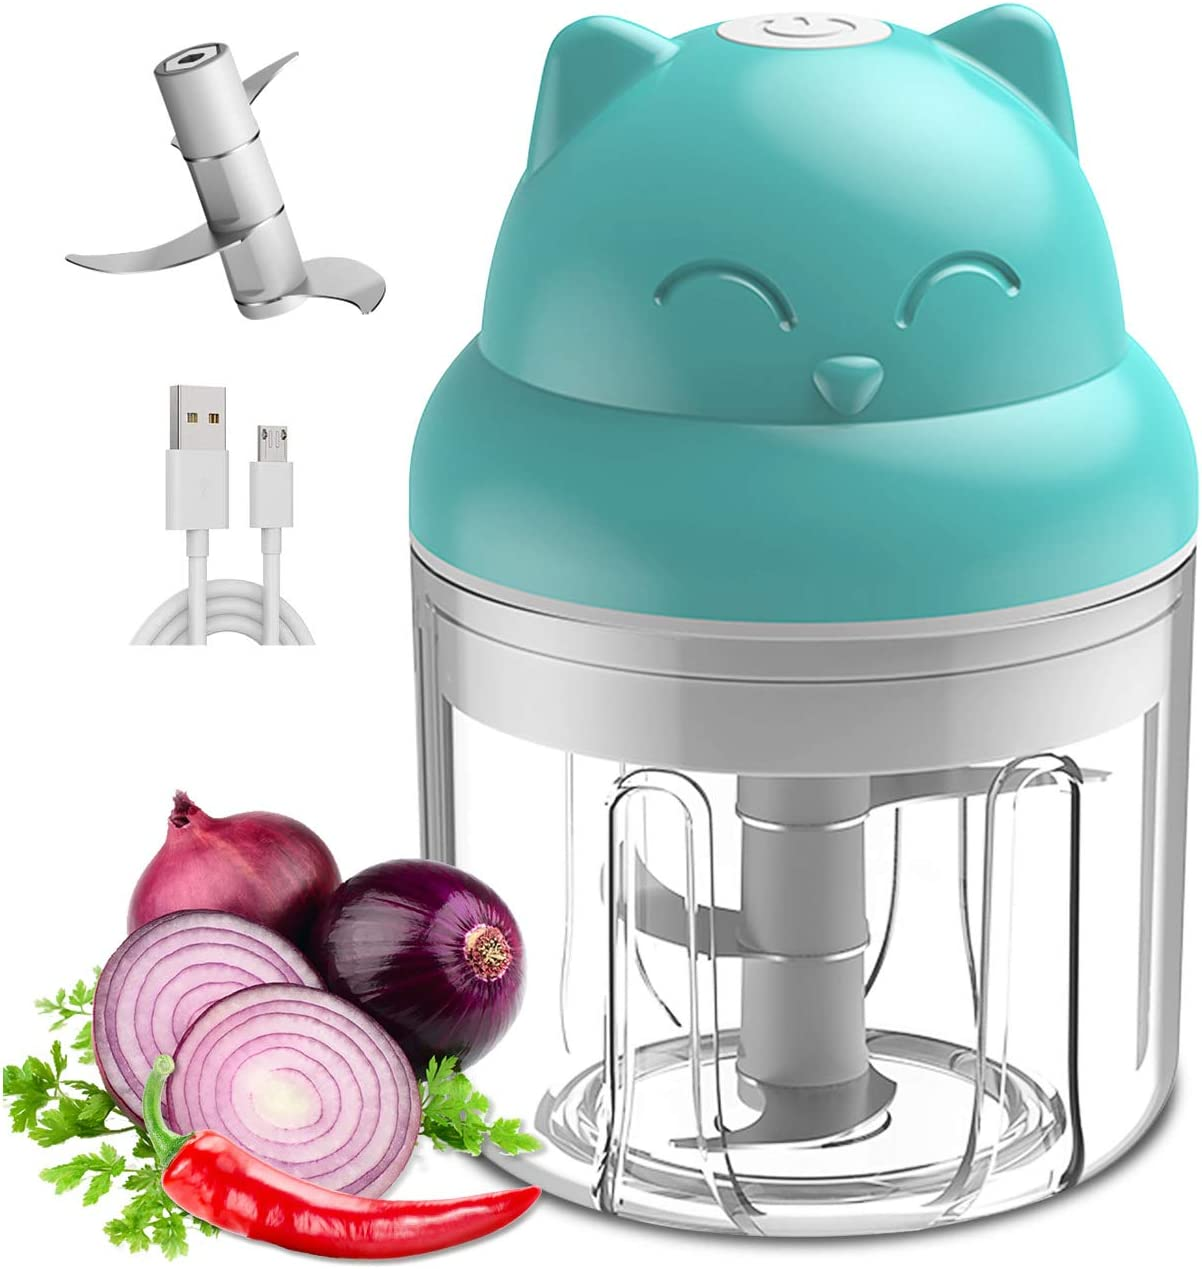 Mini Food Processor, Mini Veggie Chopper, Rechargeable Pepper Blender, Wireless Small Food Processor, Powerful Garlic Mincer for Garlic/Chili/Vegetables/Onions/Pepper/Ginger/Meat, 250ML (Blue)